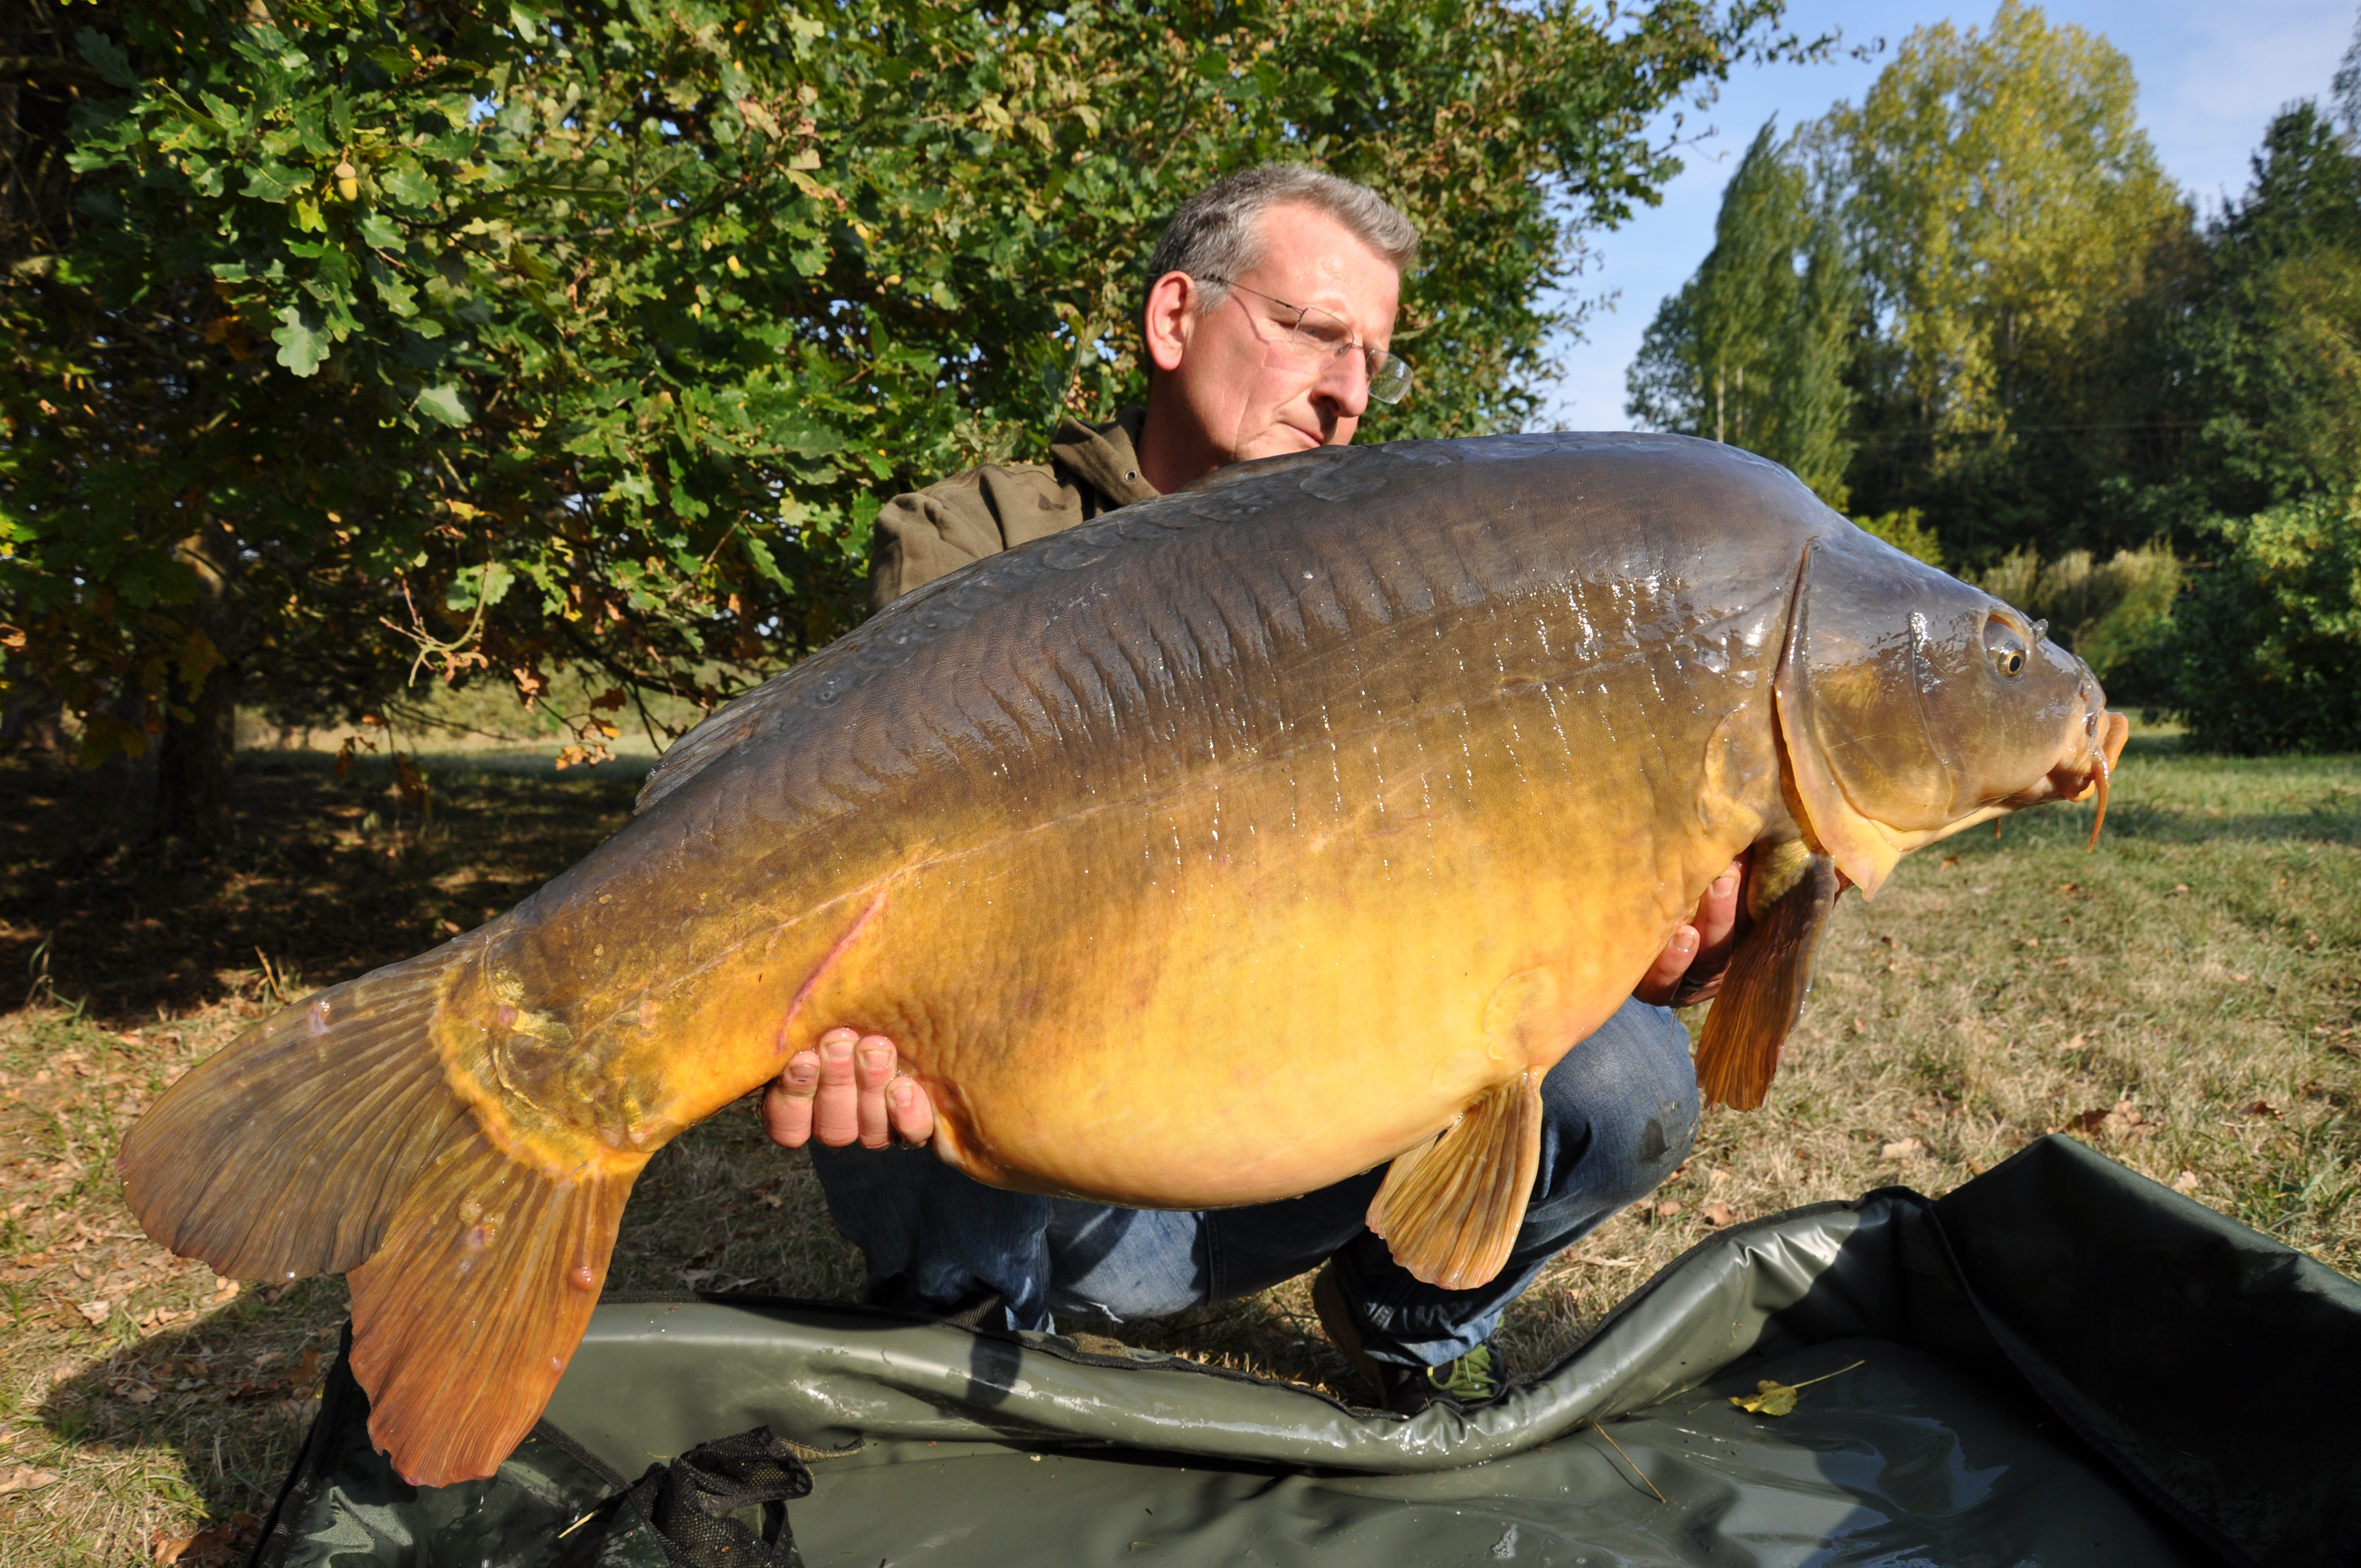 http://www.starbaits.com/fichiers/images/team/gallery/LEBRETON_Jean-Marc/jml_24,5.jpg